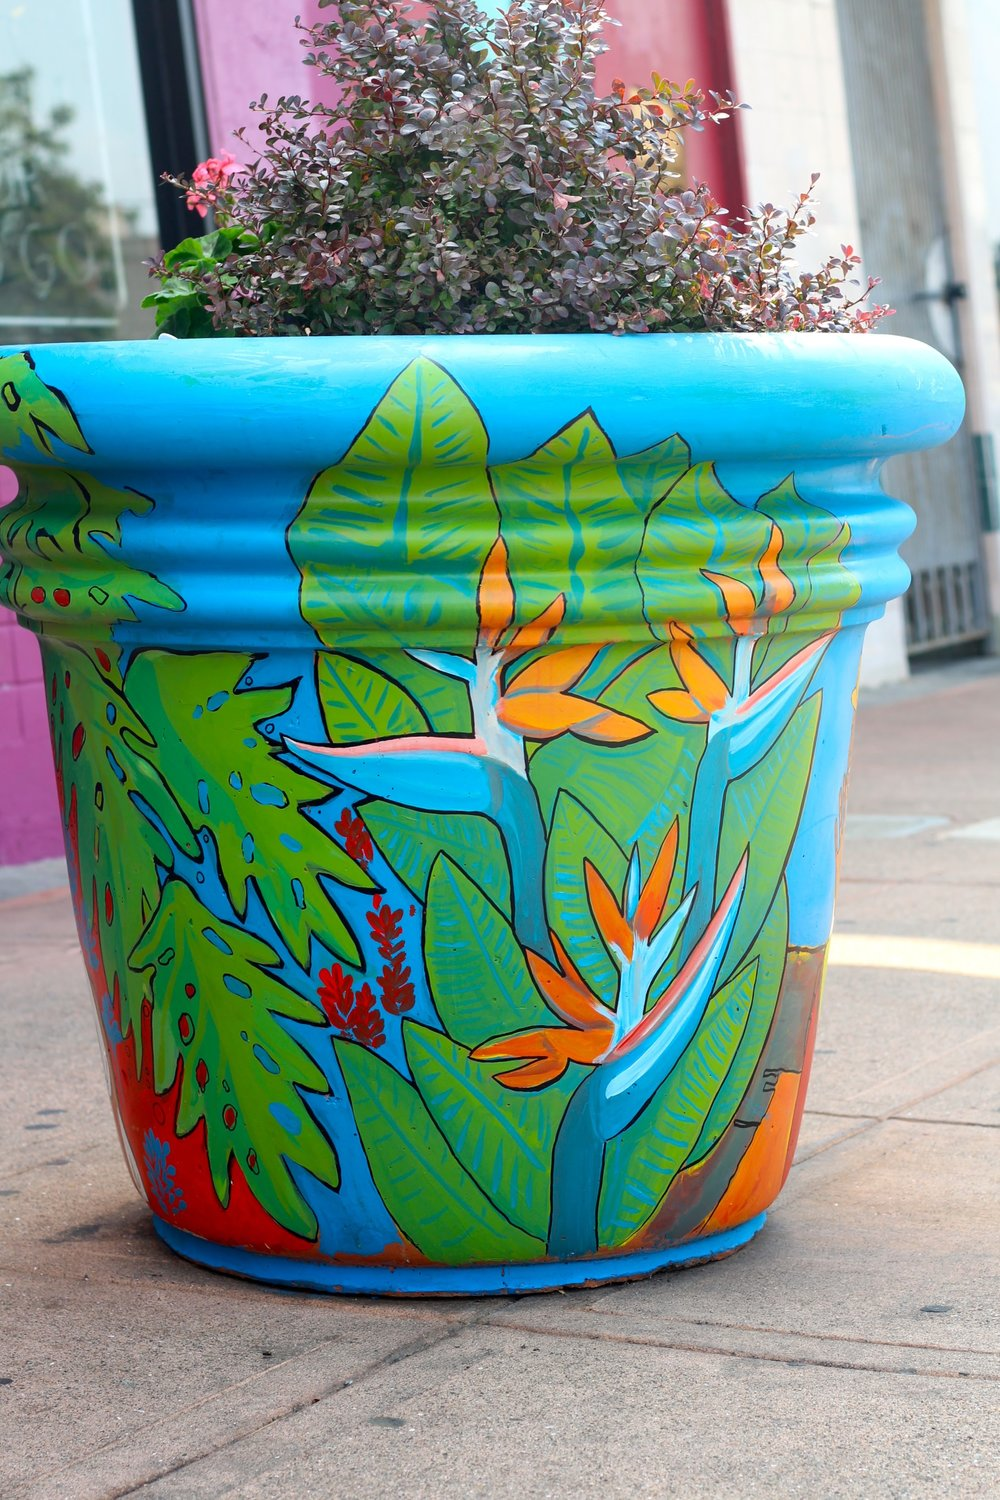 Alise and Jack collaborative planter mural project sponsored by the Laurel District Association, Oakland, CA, 2017